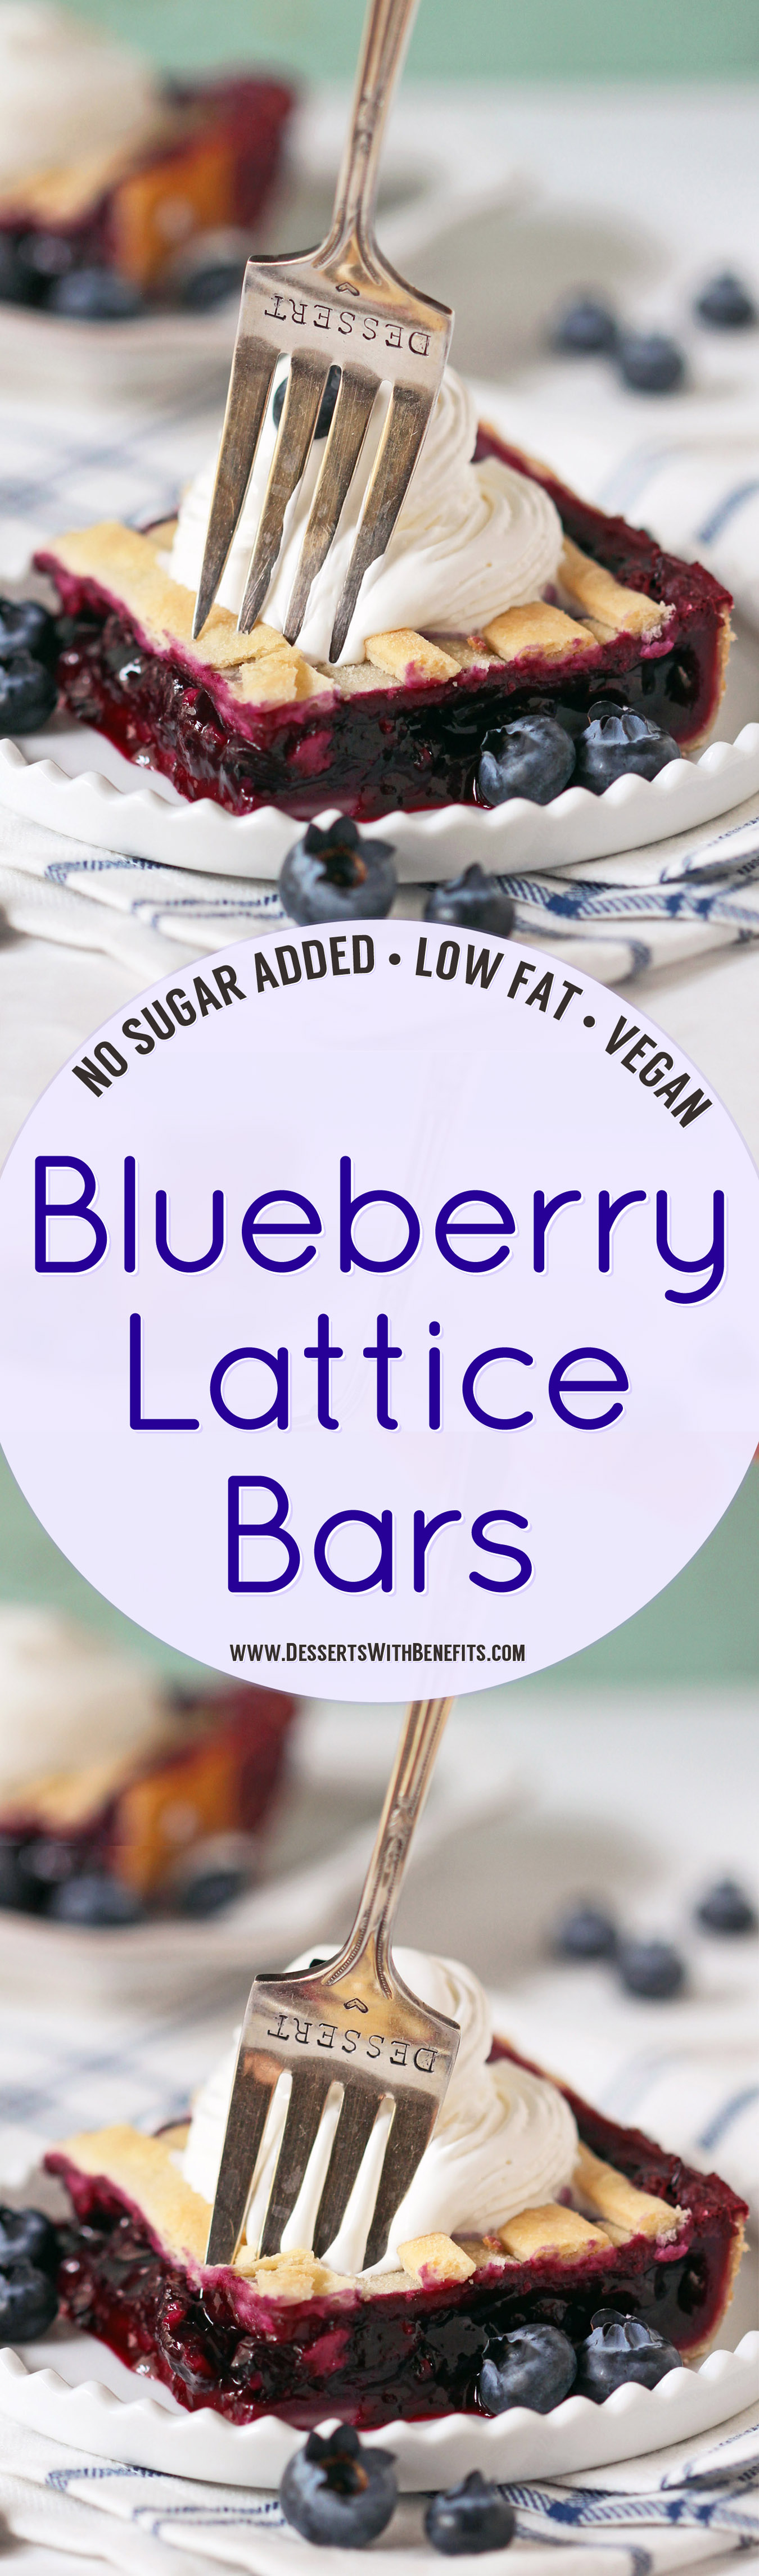 These 5-ingredient Blueberry Lattice Bars are a guaranteed crowdpleaser! Bursting with sweet, fresh blueberry flavor, plus a buttery pie crust, you'd never know they're vegan, low fat, contain no added sugar, and are totally guilt free! Healthy Dessert Recipes with sugar free, low calorie, low carb, high protein, and gluten free options at the Desserts With Benefits Blog (www.DessertsWithBenefits.com)